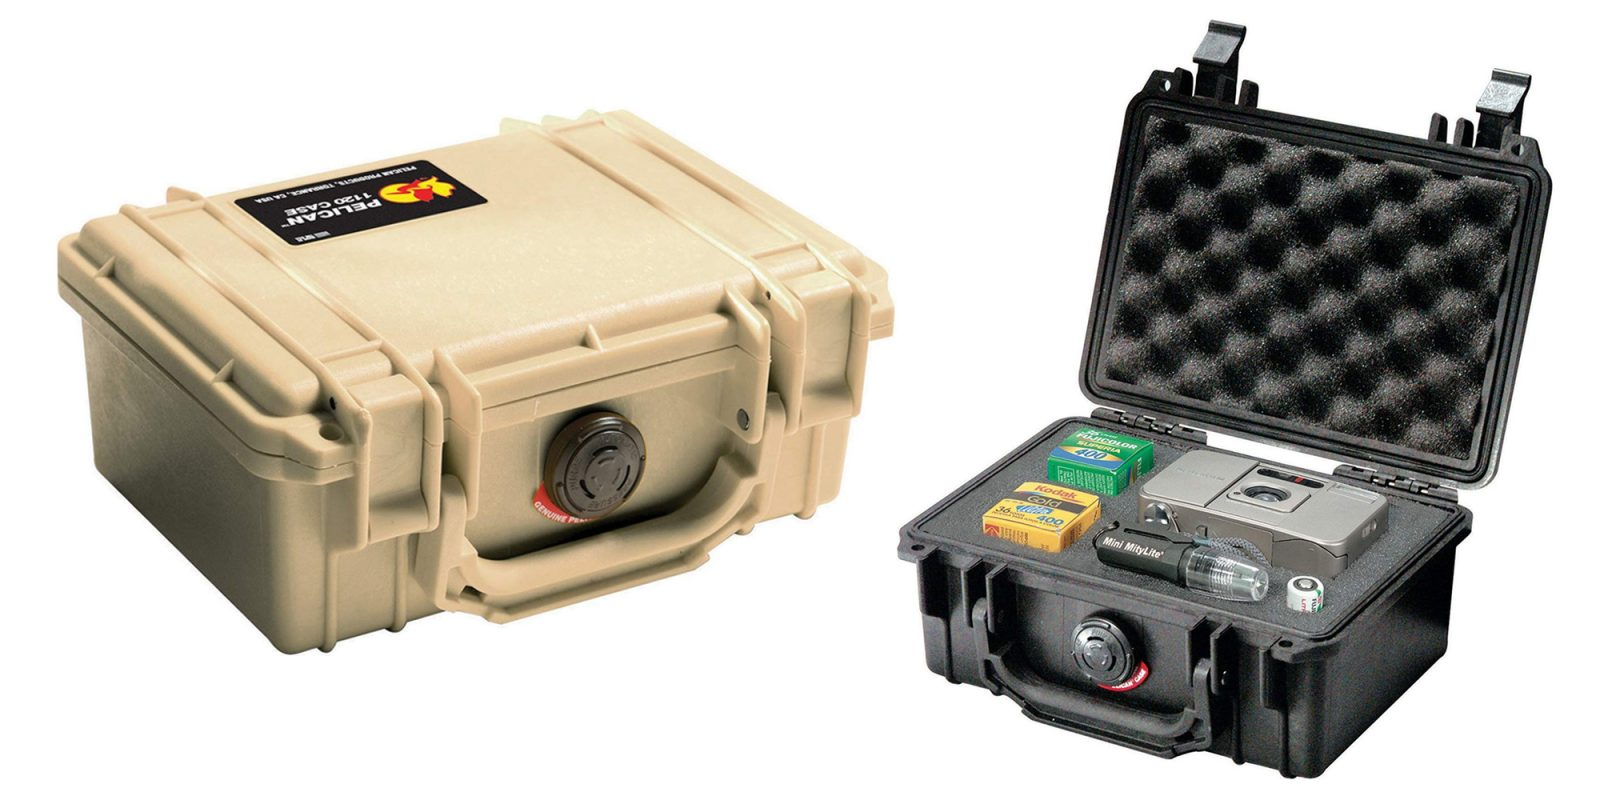 Pelican's Watertight Case keeps your gear protected for $24.50 (25% off)